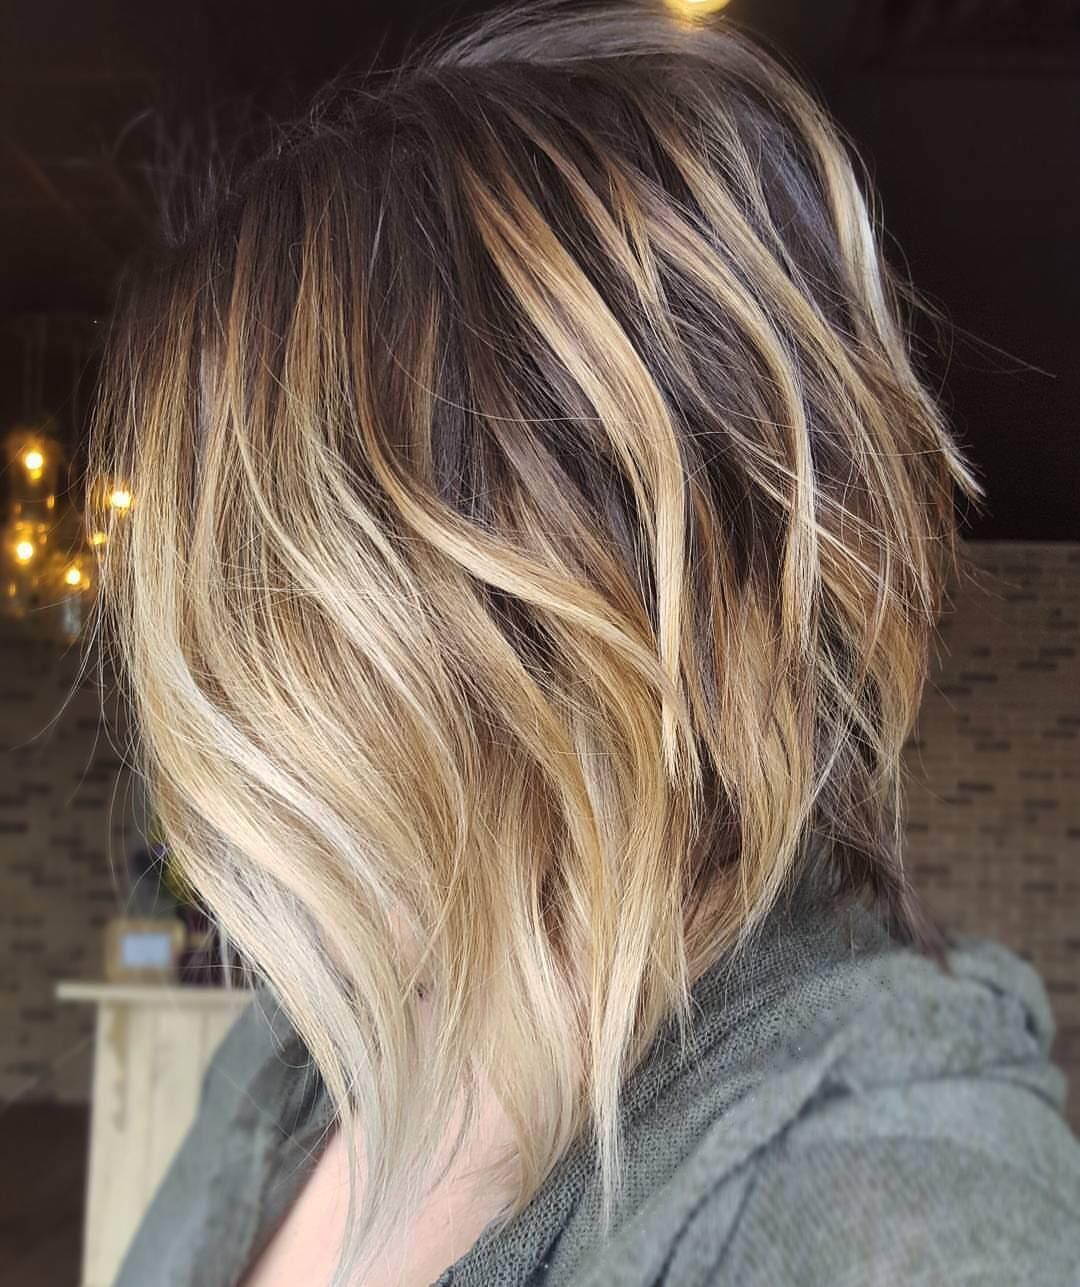 Most Popular Medium Hairstyles Women Shoulder Length Haircuts Brown Hair With Blonde Highlights Medium Bob Hairstyles Blonde Ombre Short Hair